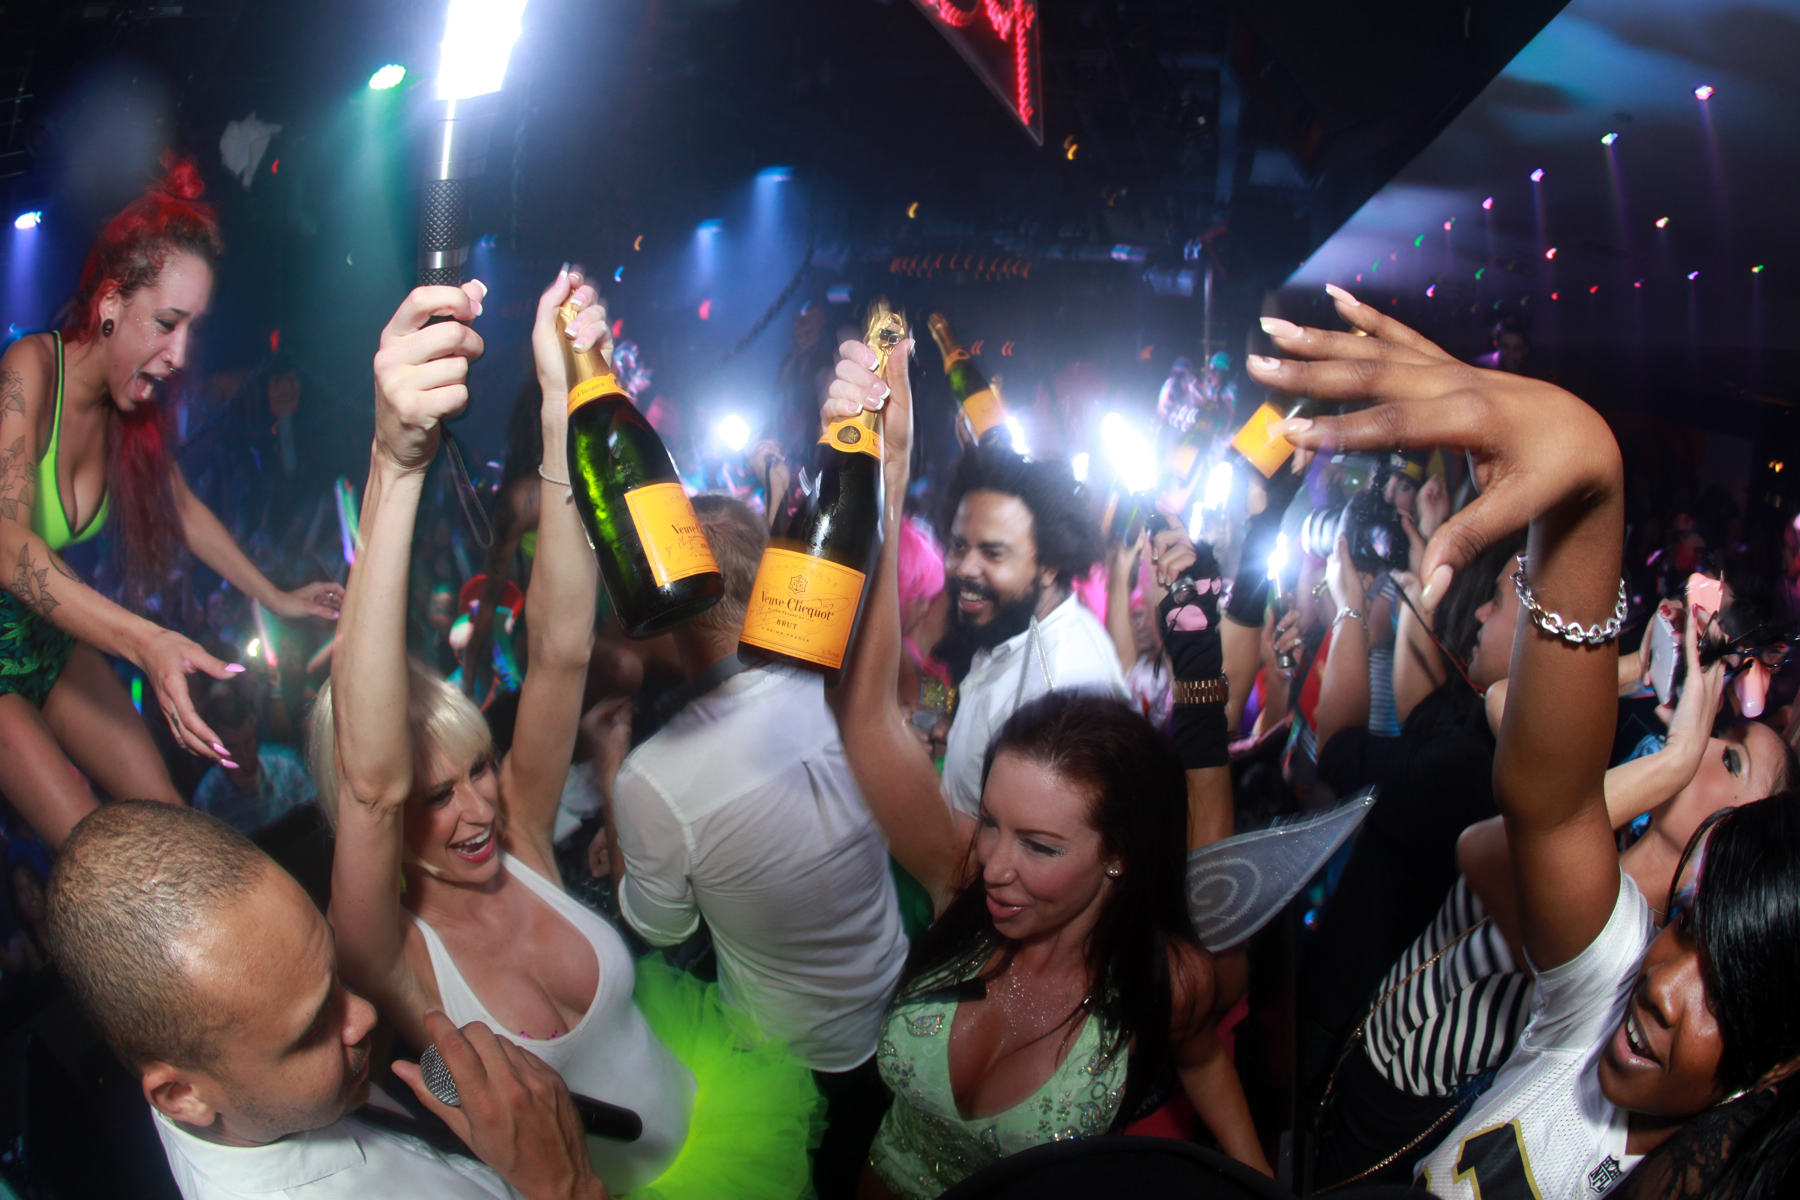 8 Keys To Bottle Service From A Girl